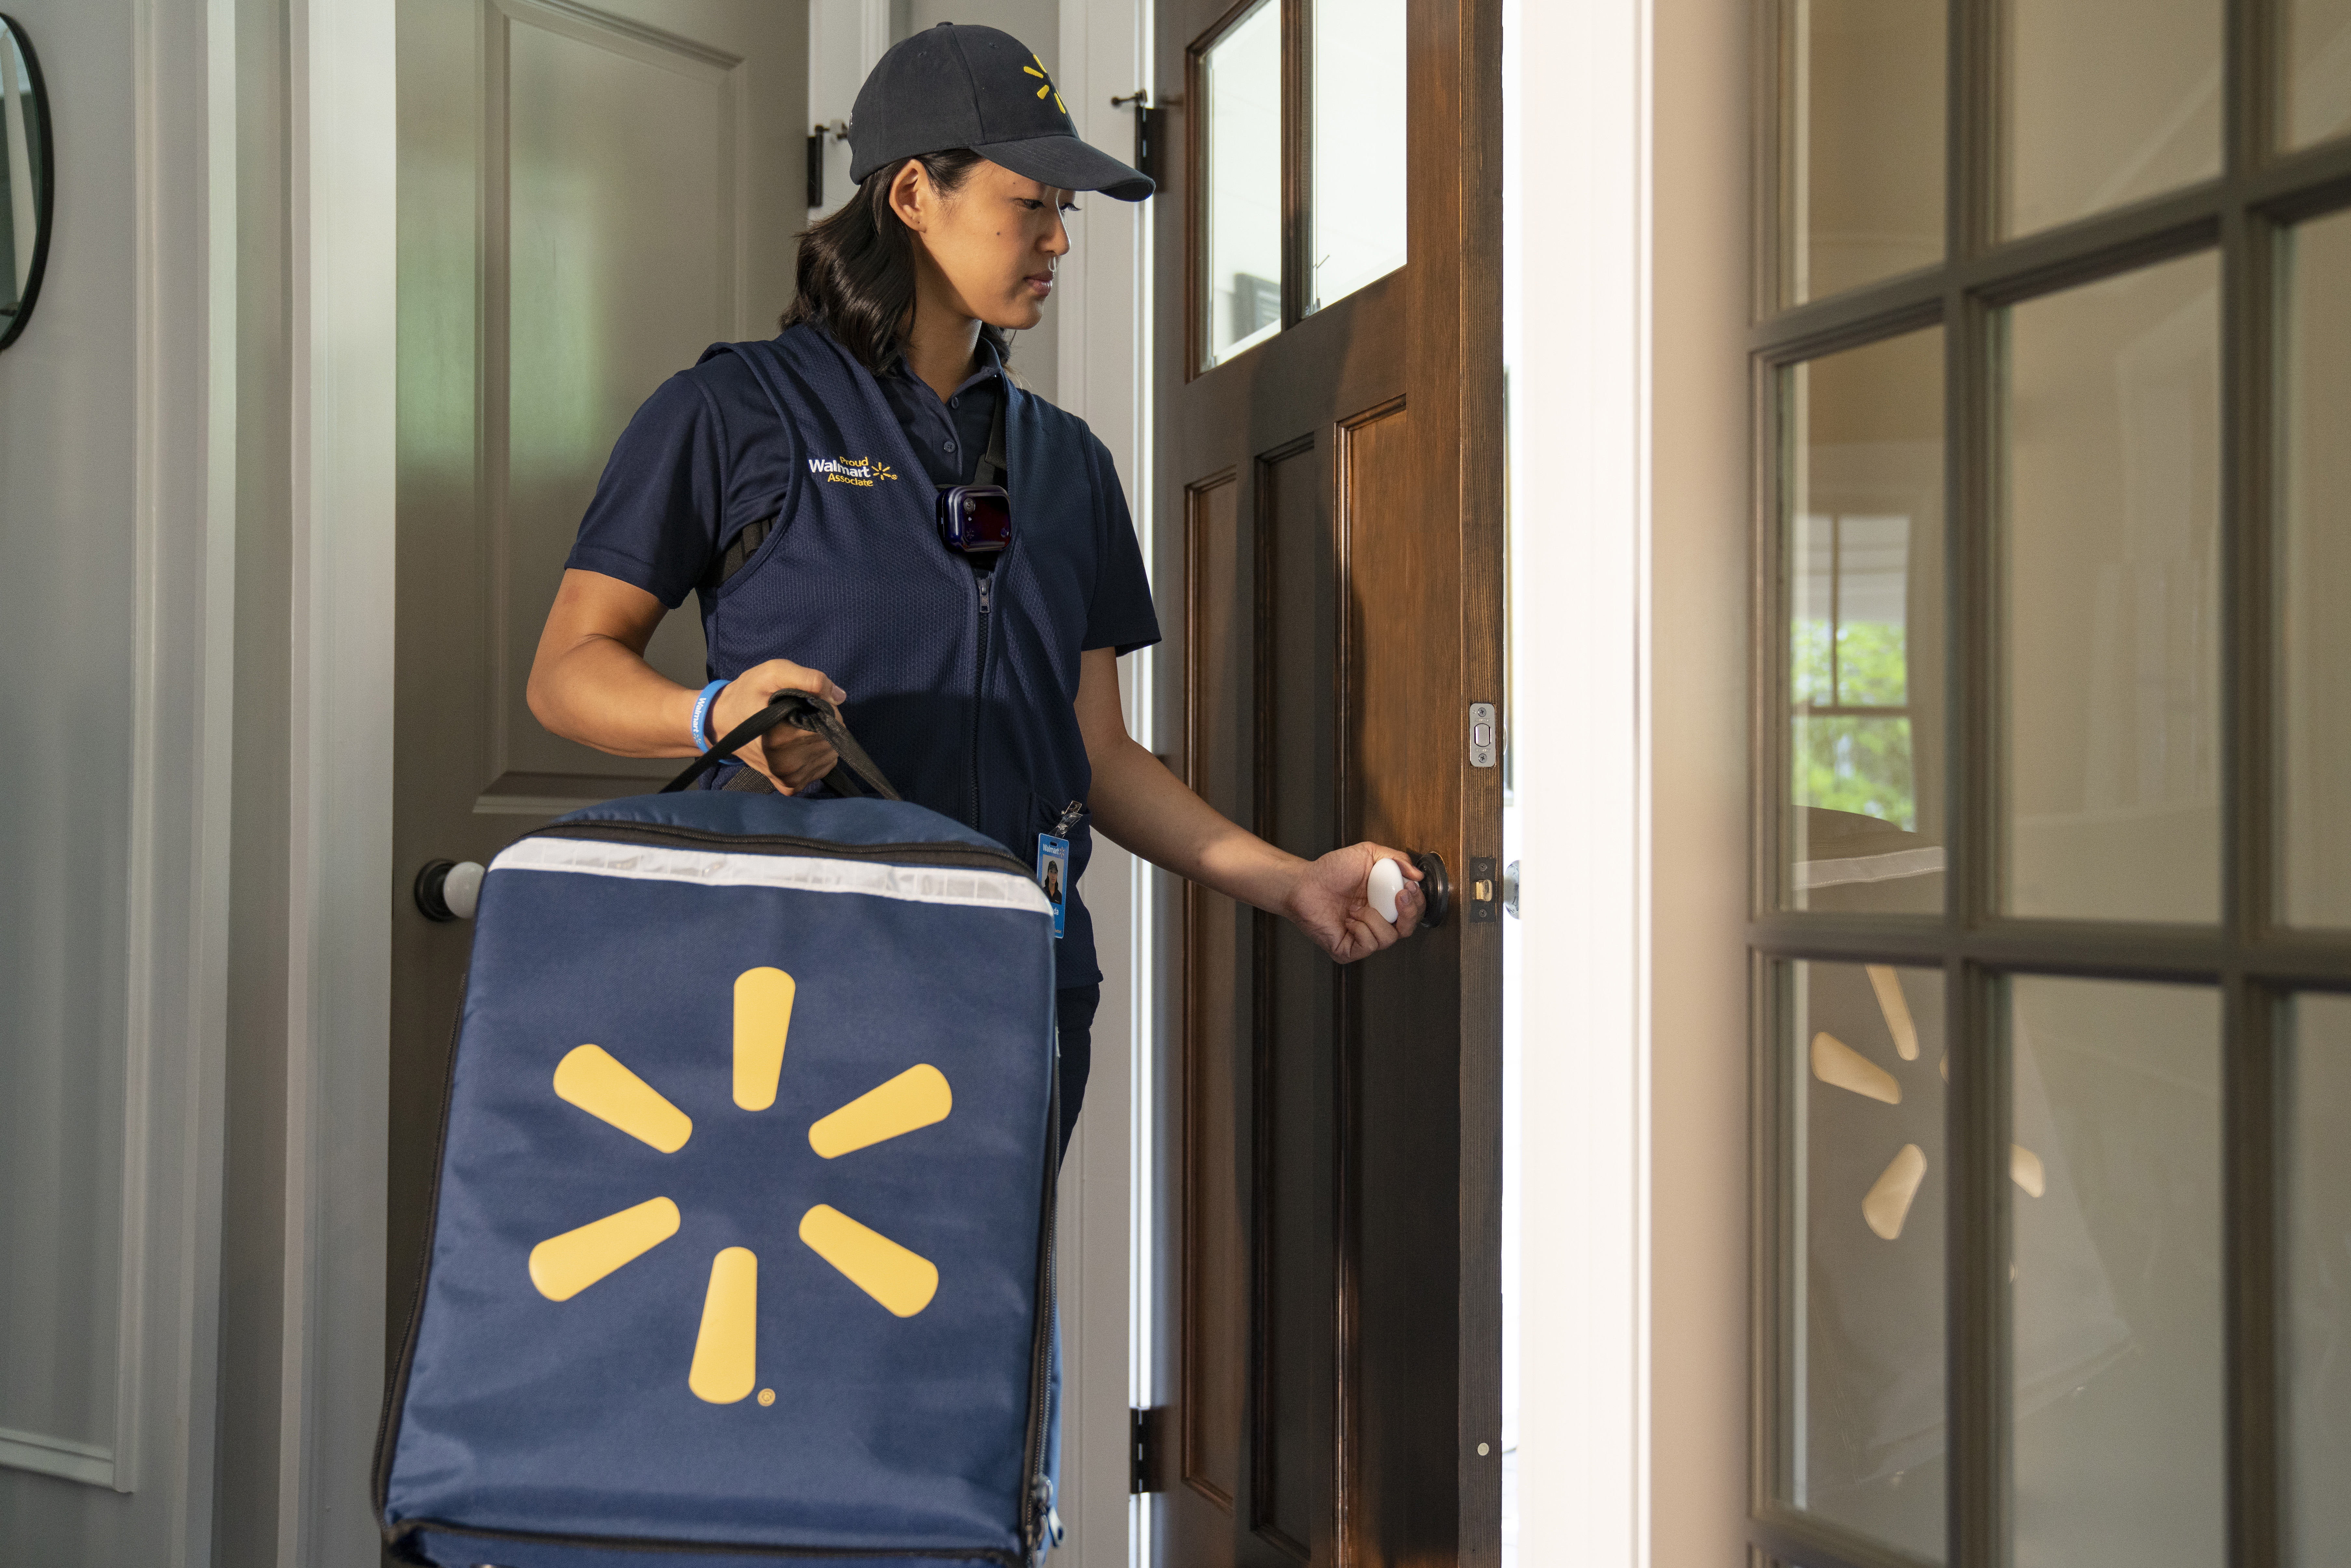 Associate entering a home with InHome Delivery